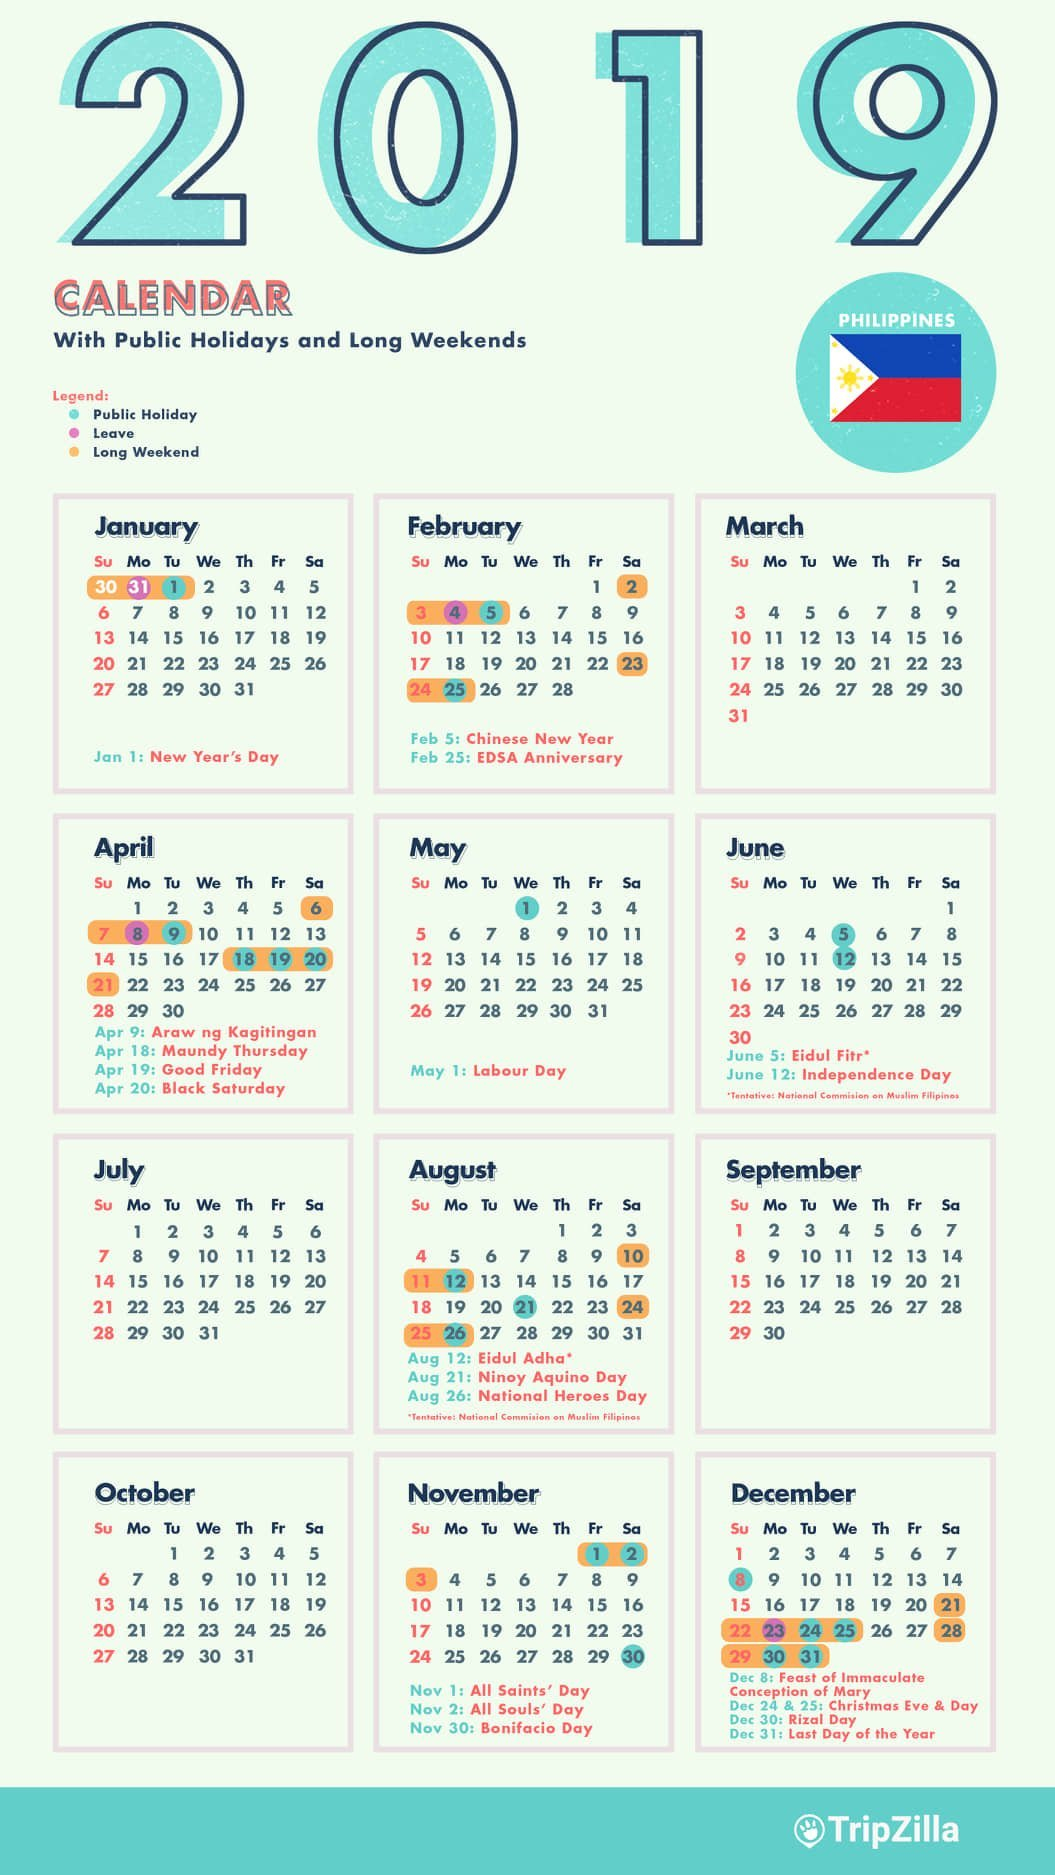 10 Long Weekends In The Philippines In 2019 With Calendar & Cheatsheet Calendar Of 2019 With Holidays